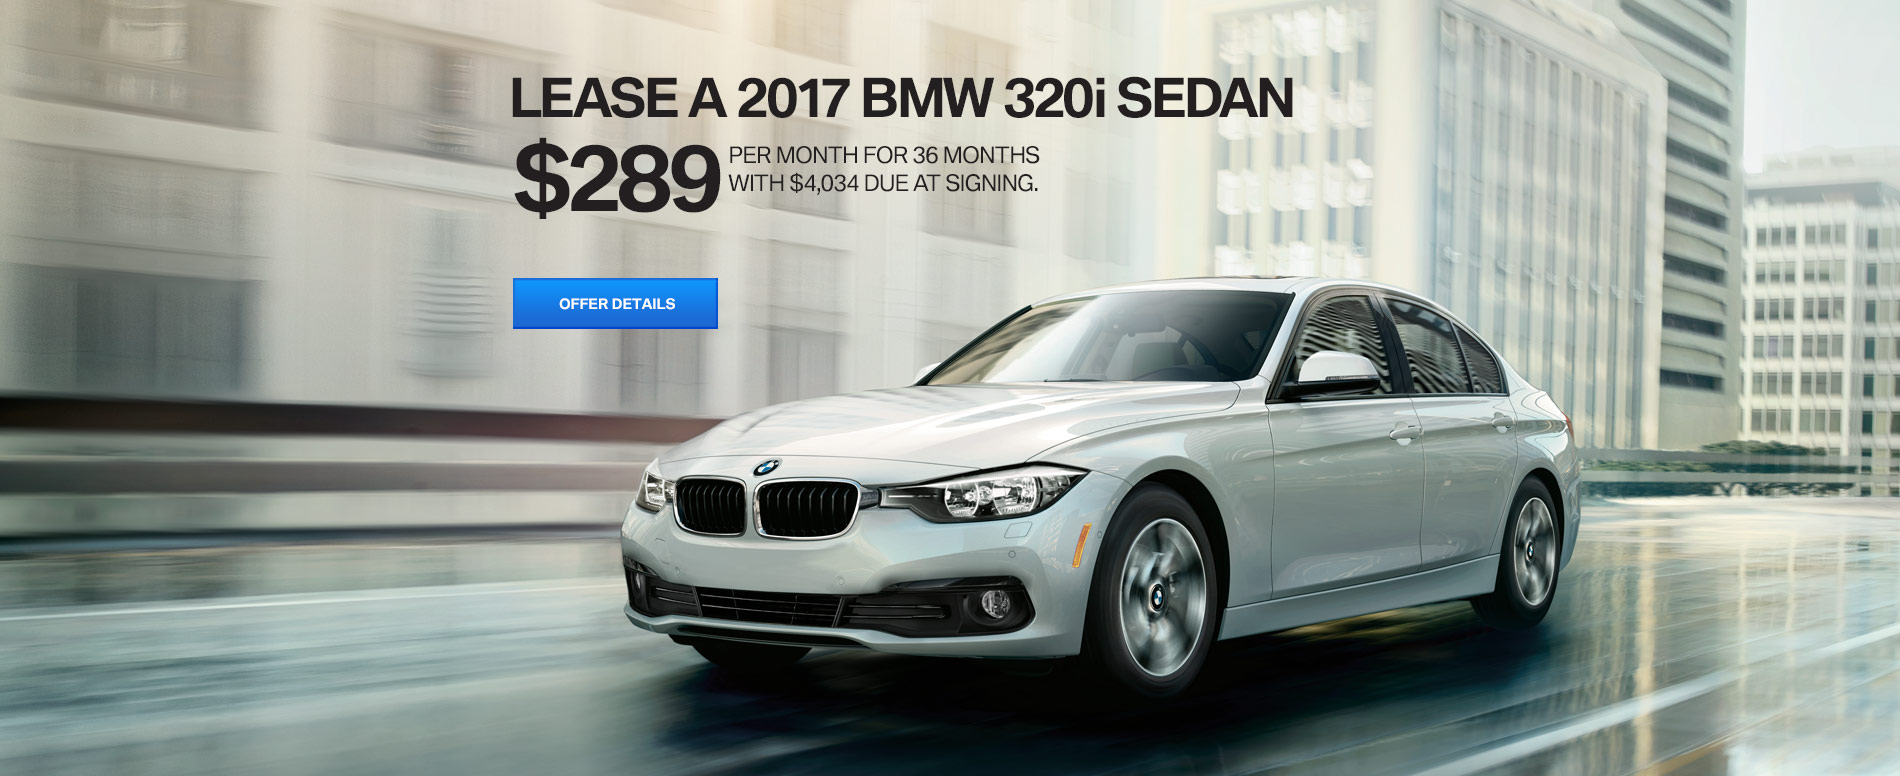 320i Sedan Lease for $359/mo for 36 months